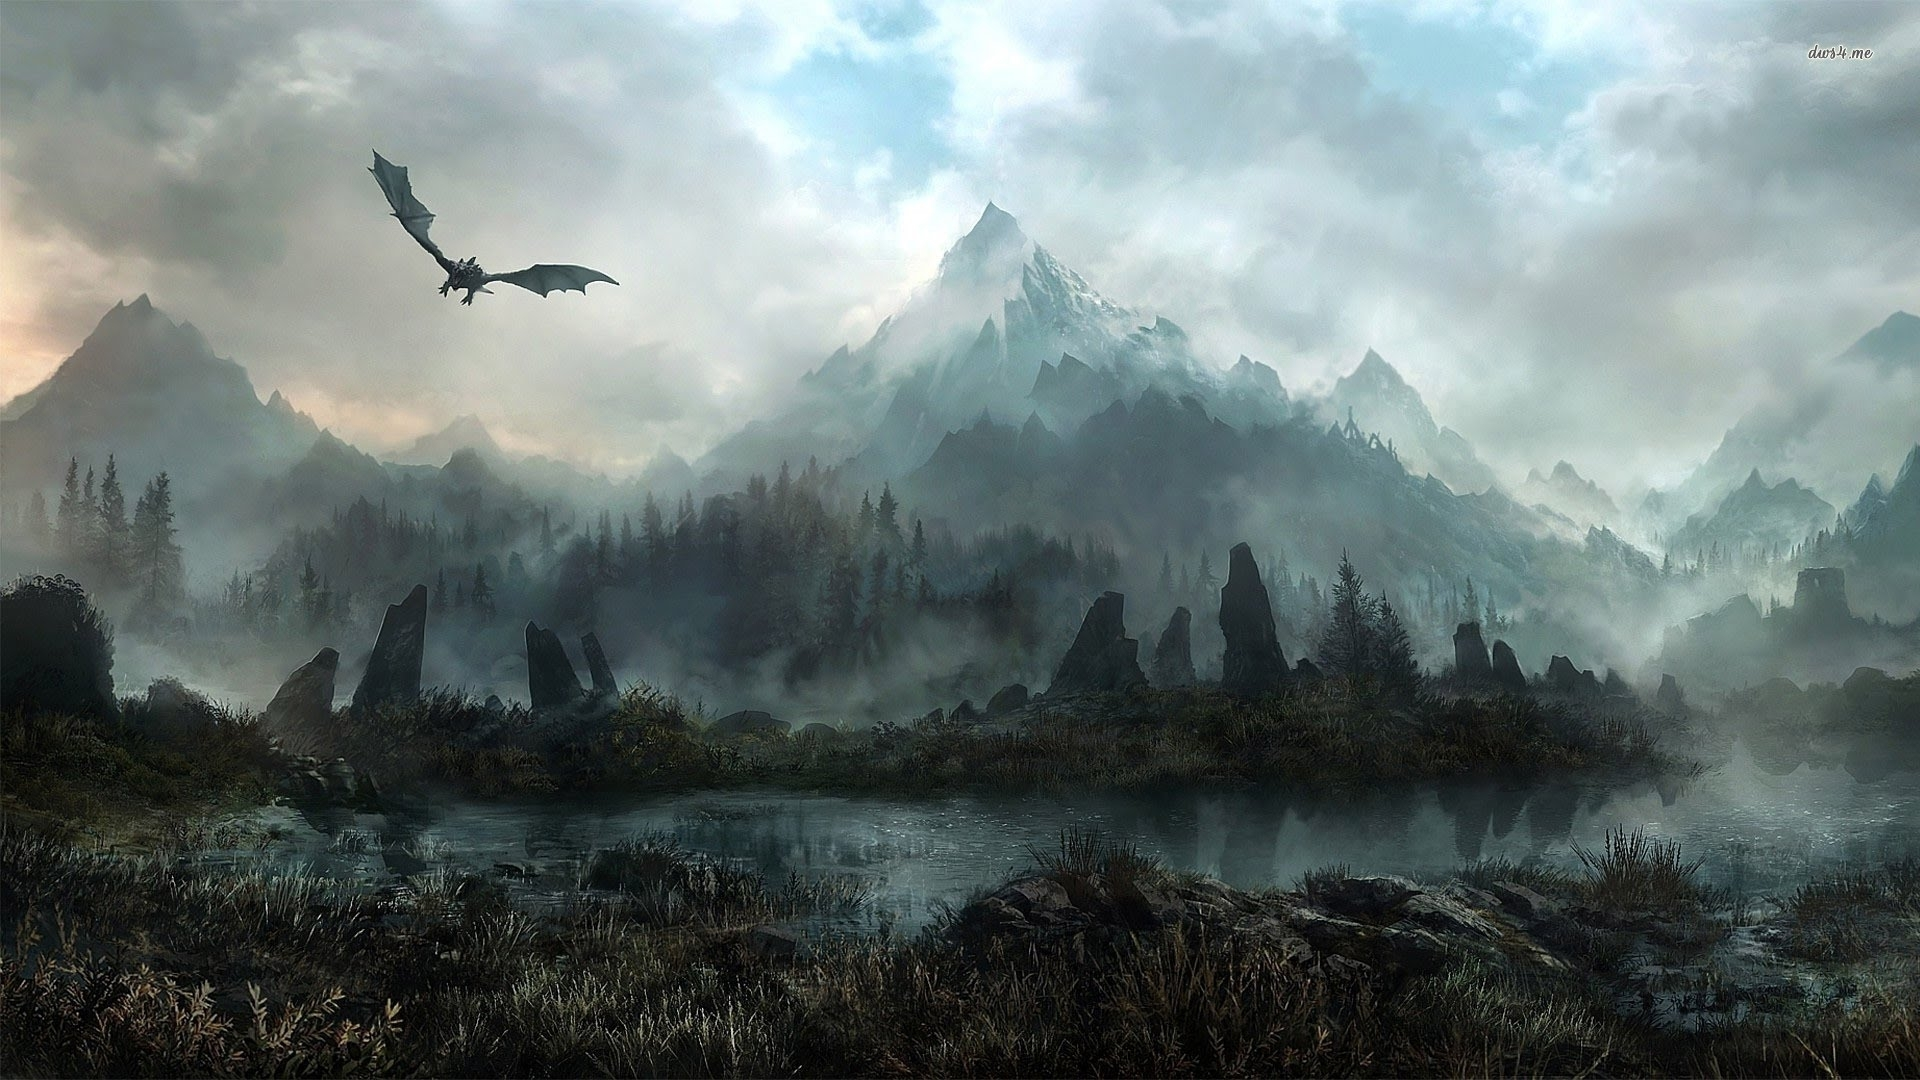 10 most popular epic fantasy wallpapers hd full hd 1920×1080 for pc